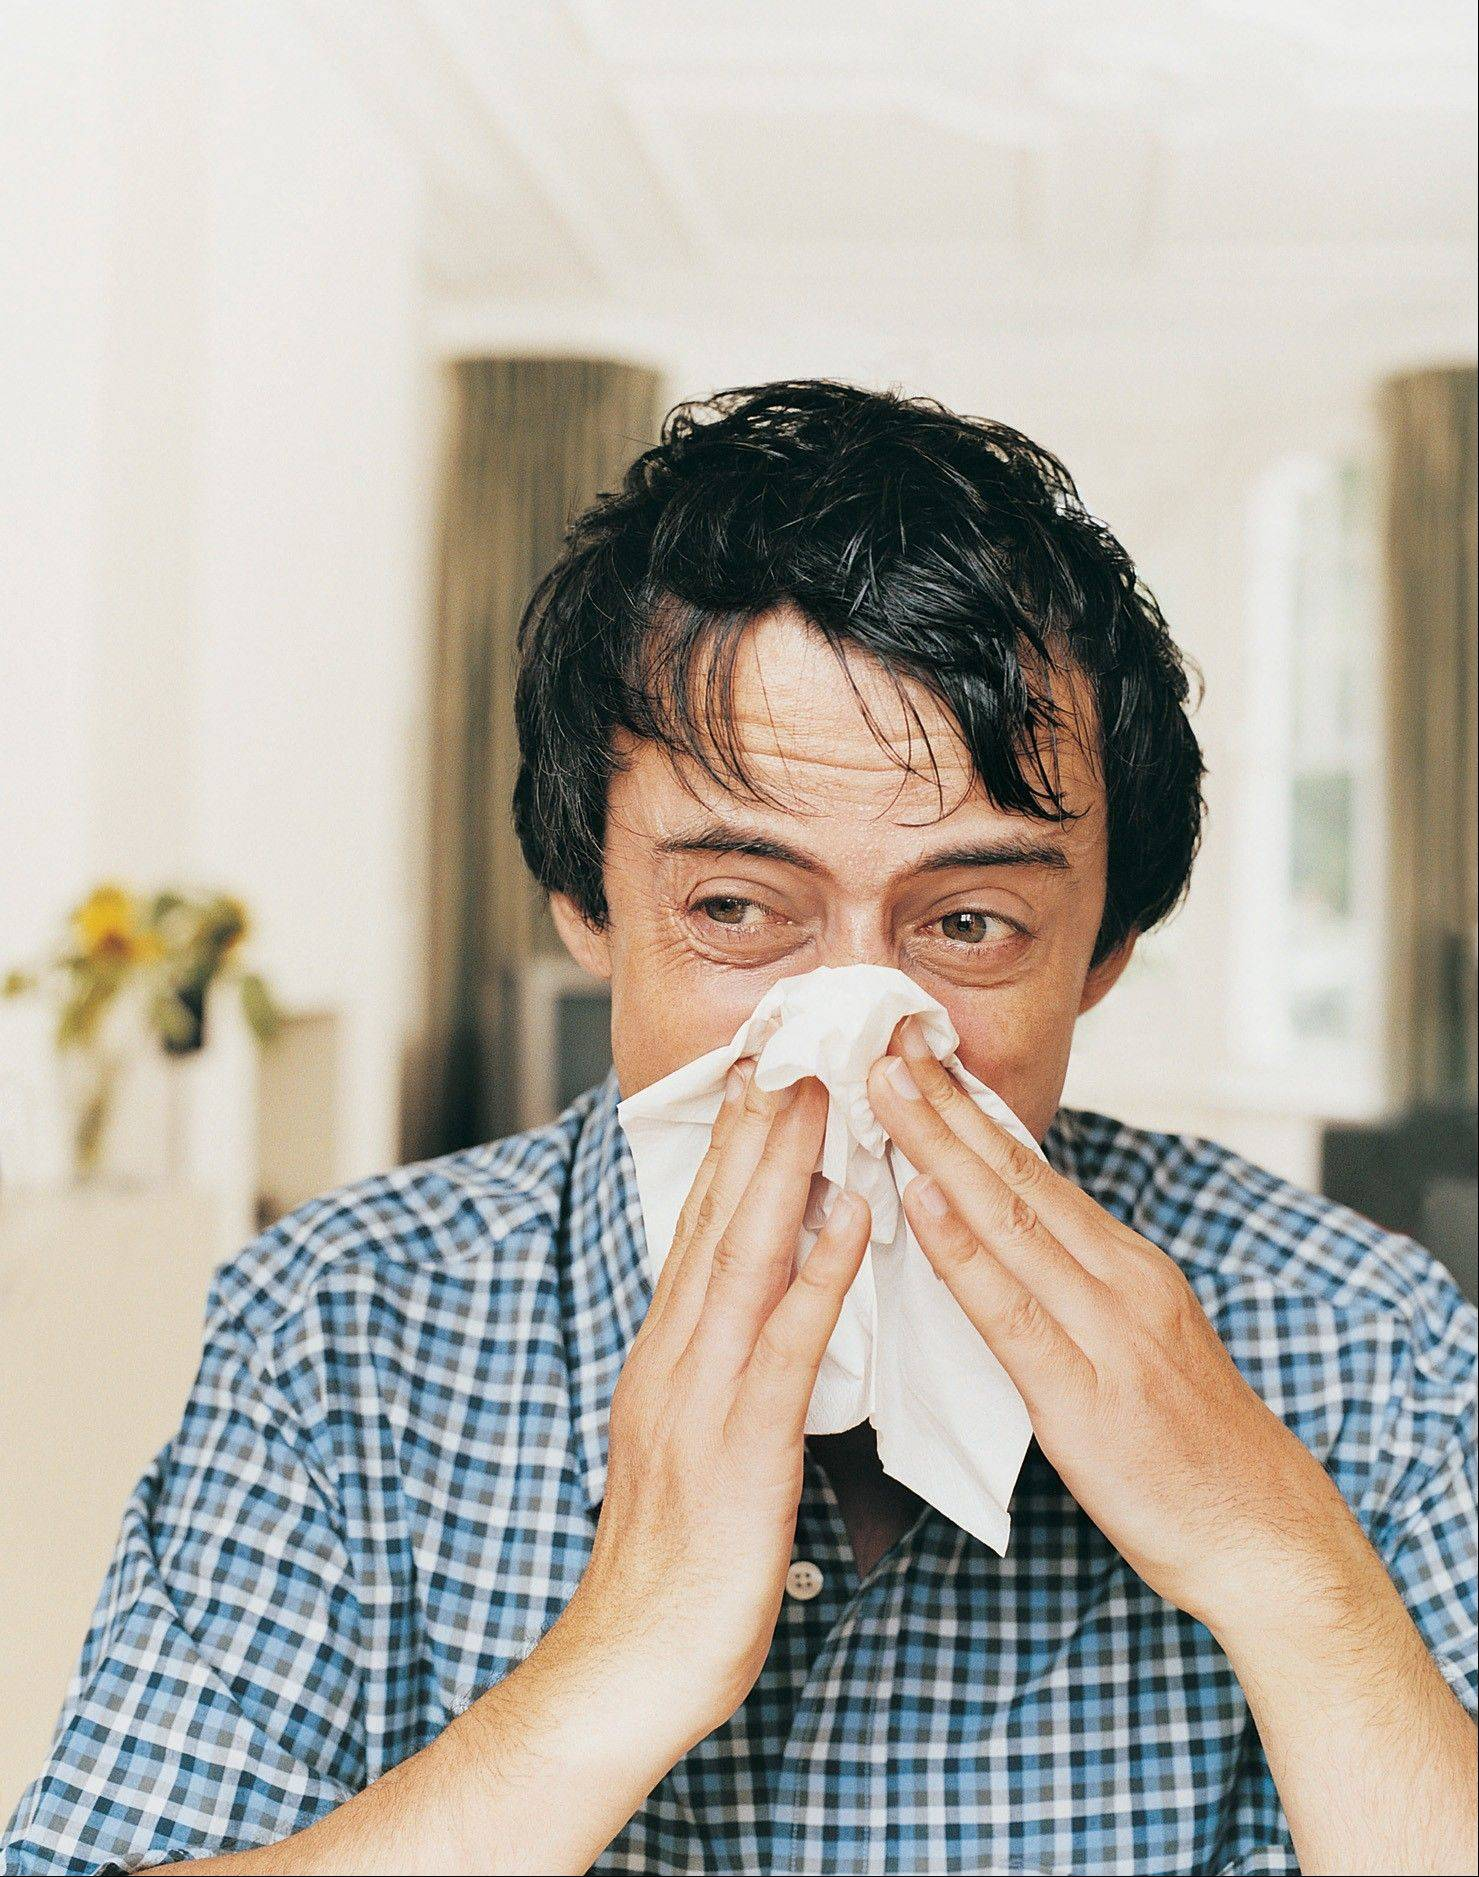 Health experts recommend staying home if you're sick instead of going into the office.